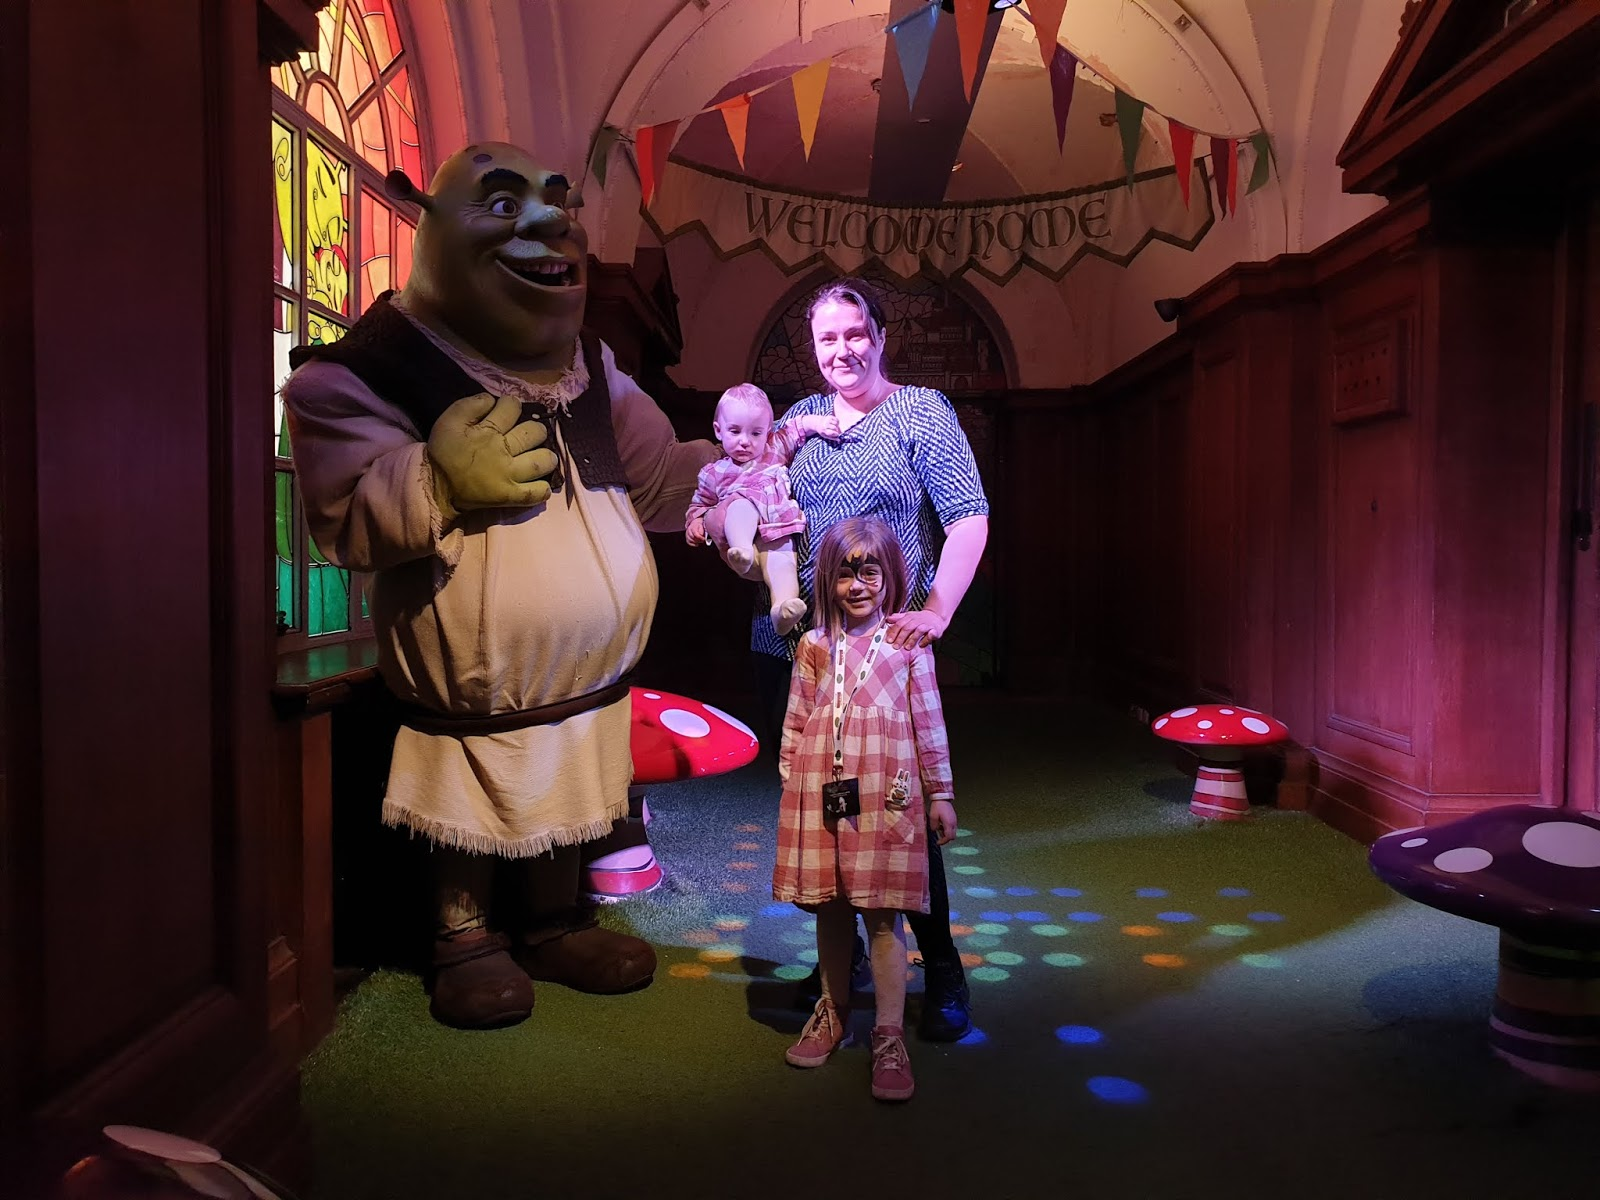 meeting shrek at shreks adventure